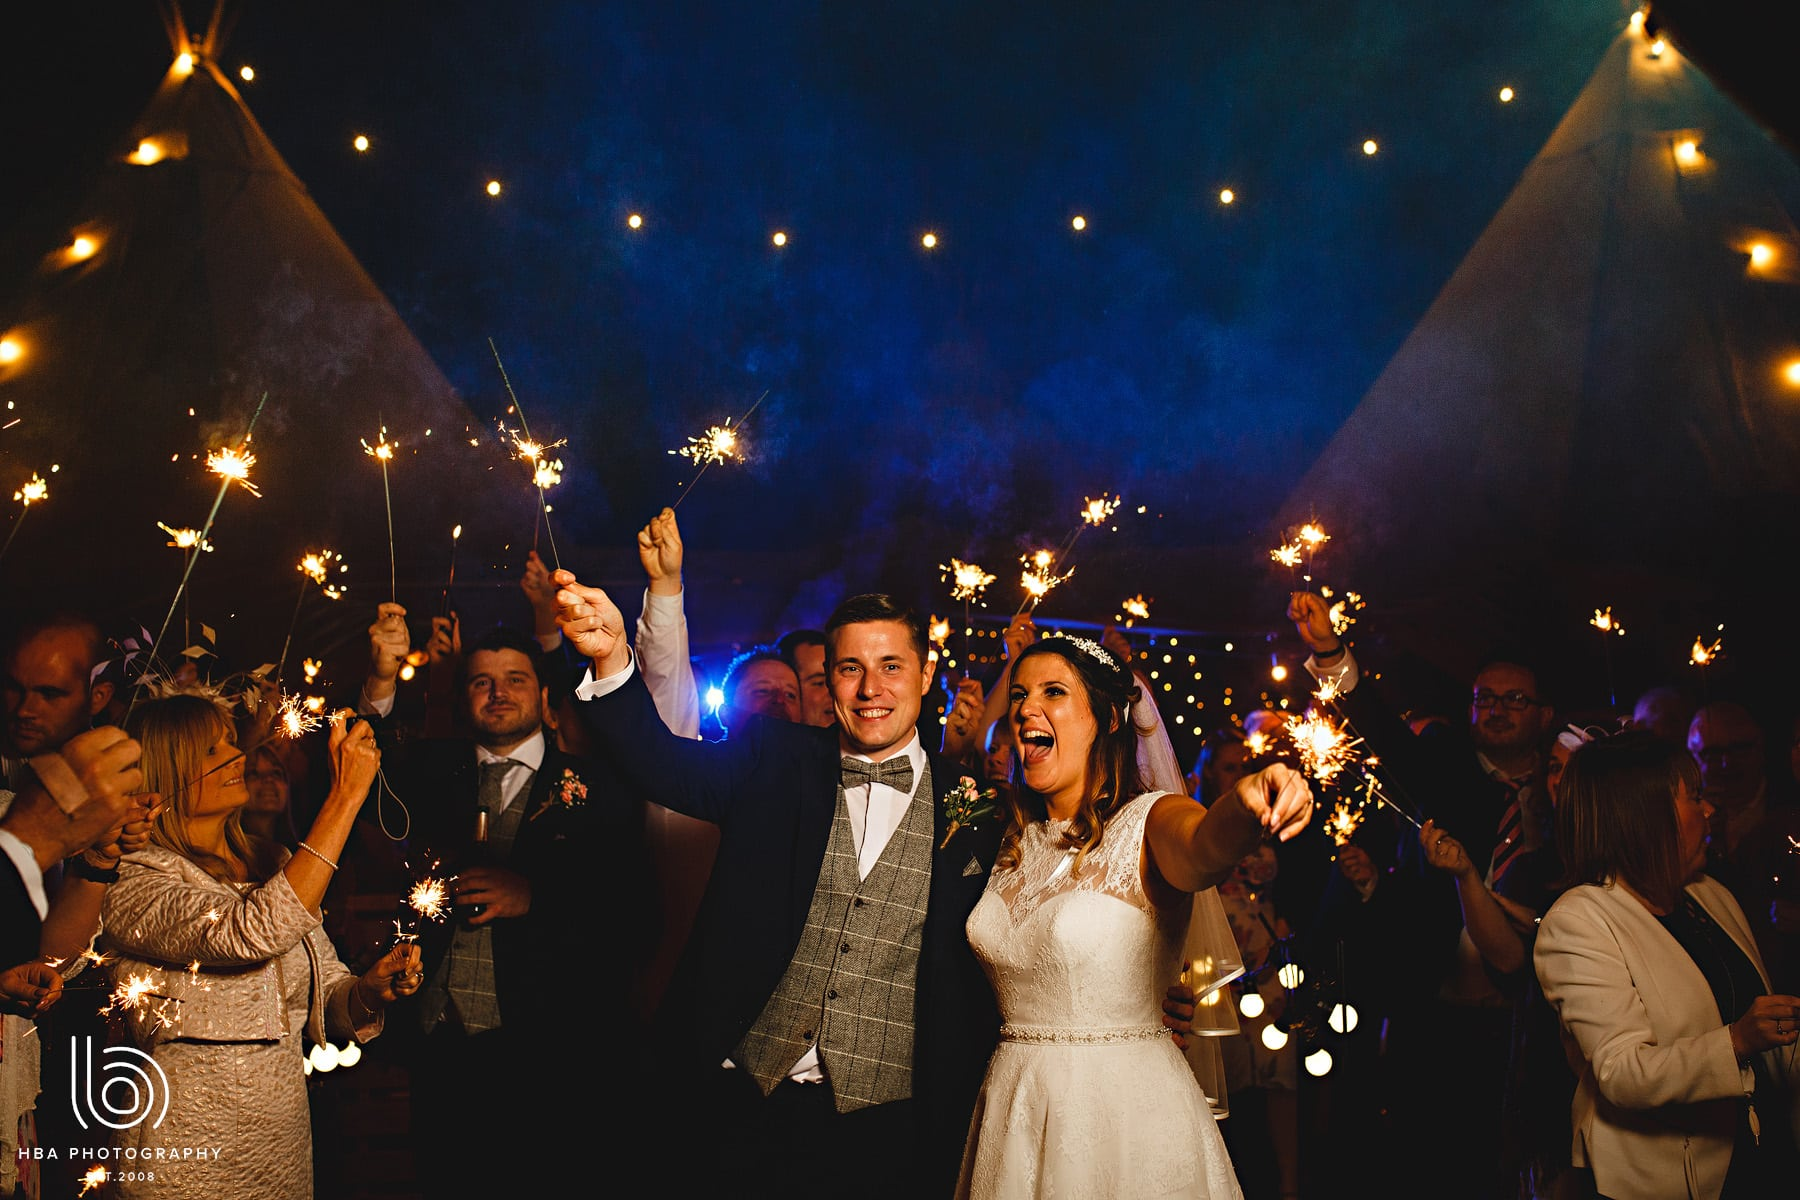 The bride & groom with their sparklers